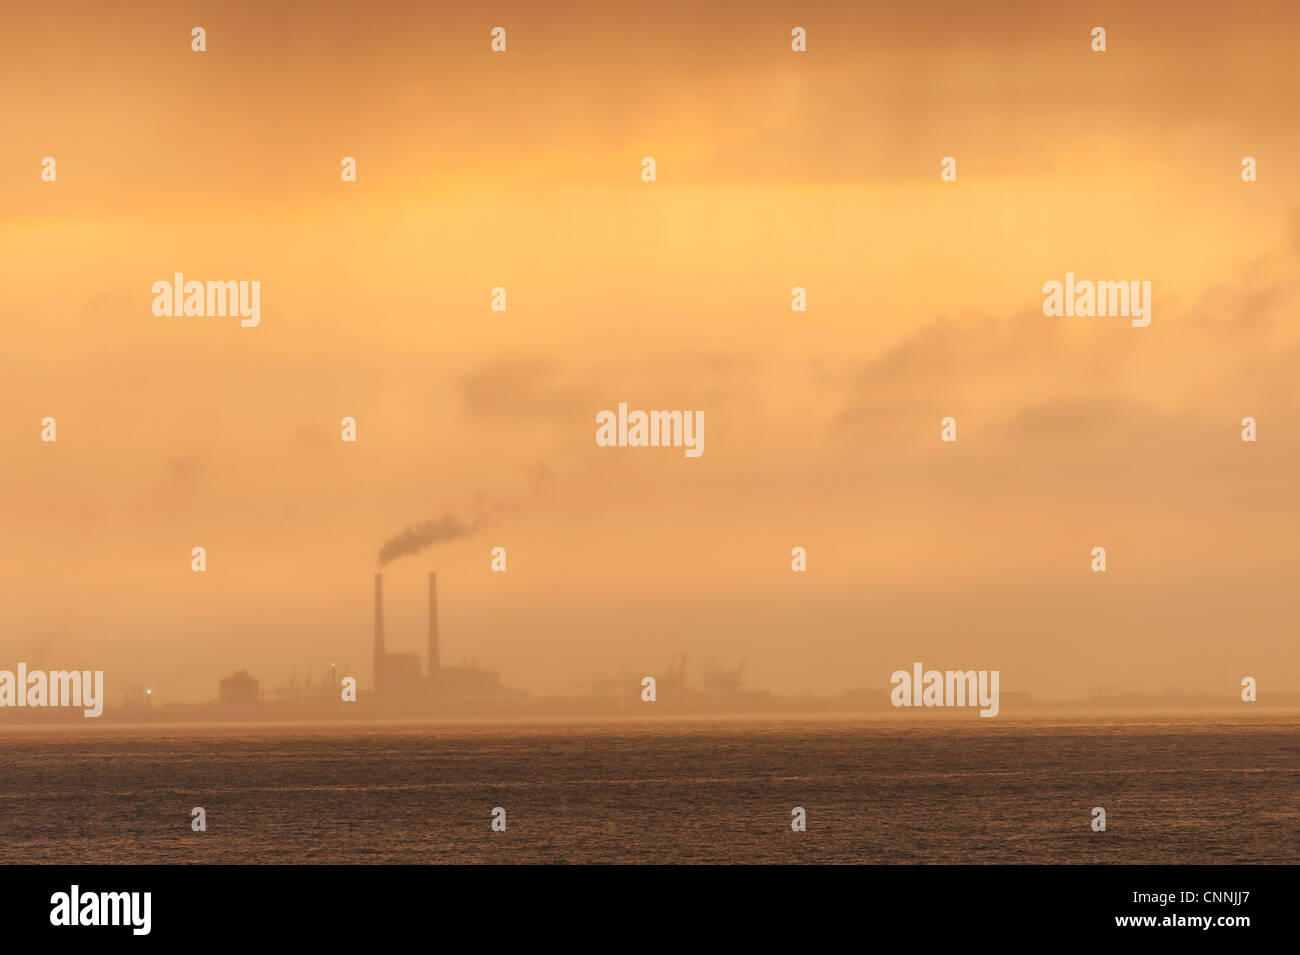 factory industrial air pollution - Stock Image